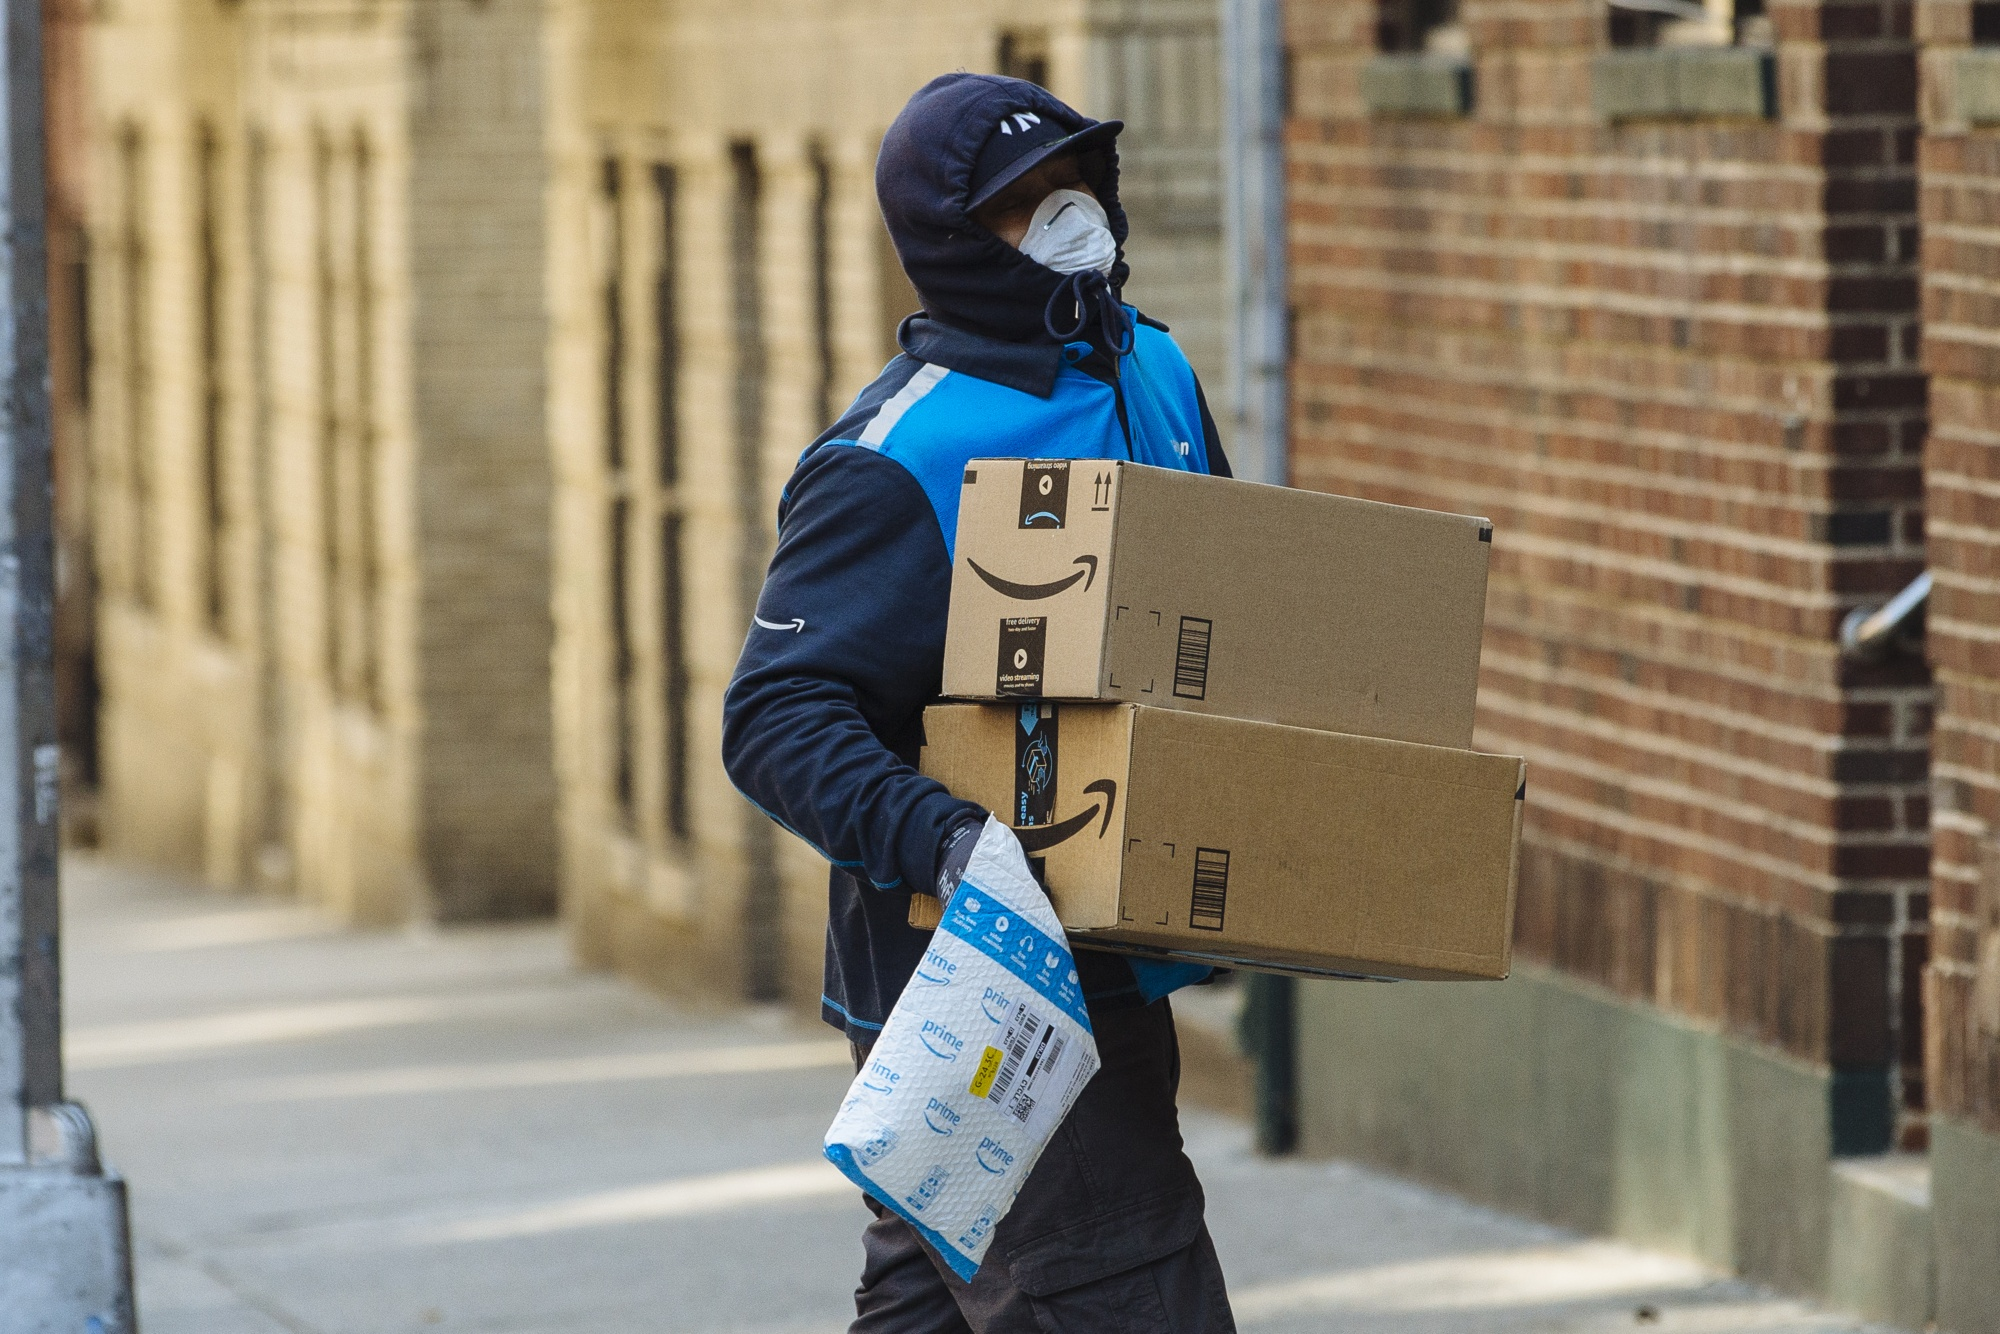 A worker carries Amazon.com Inc. boxes during a delivery in the Bronx borough of New York.